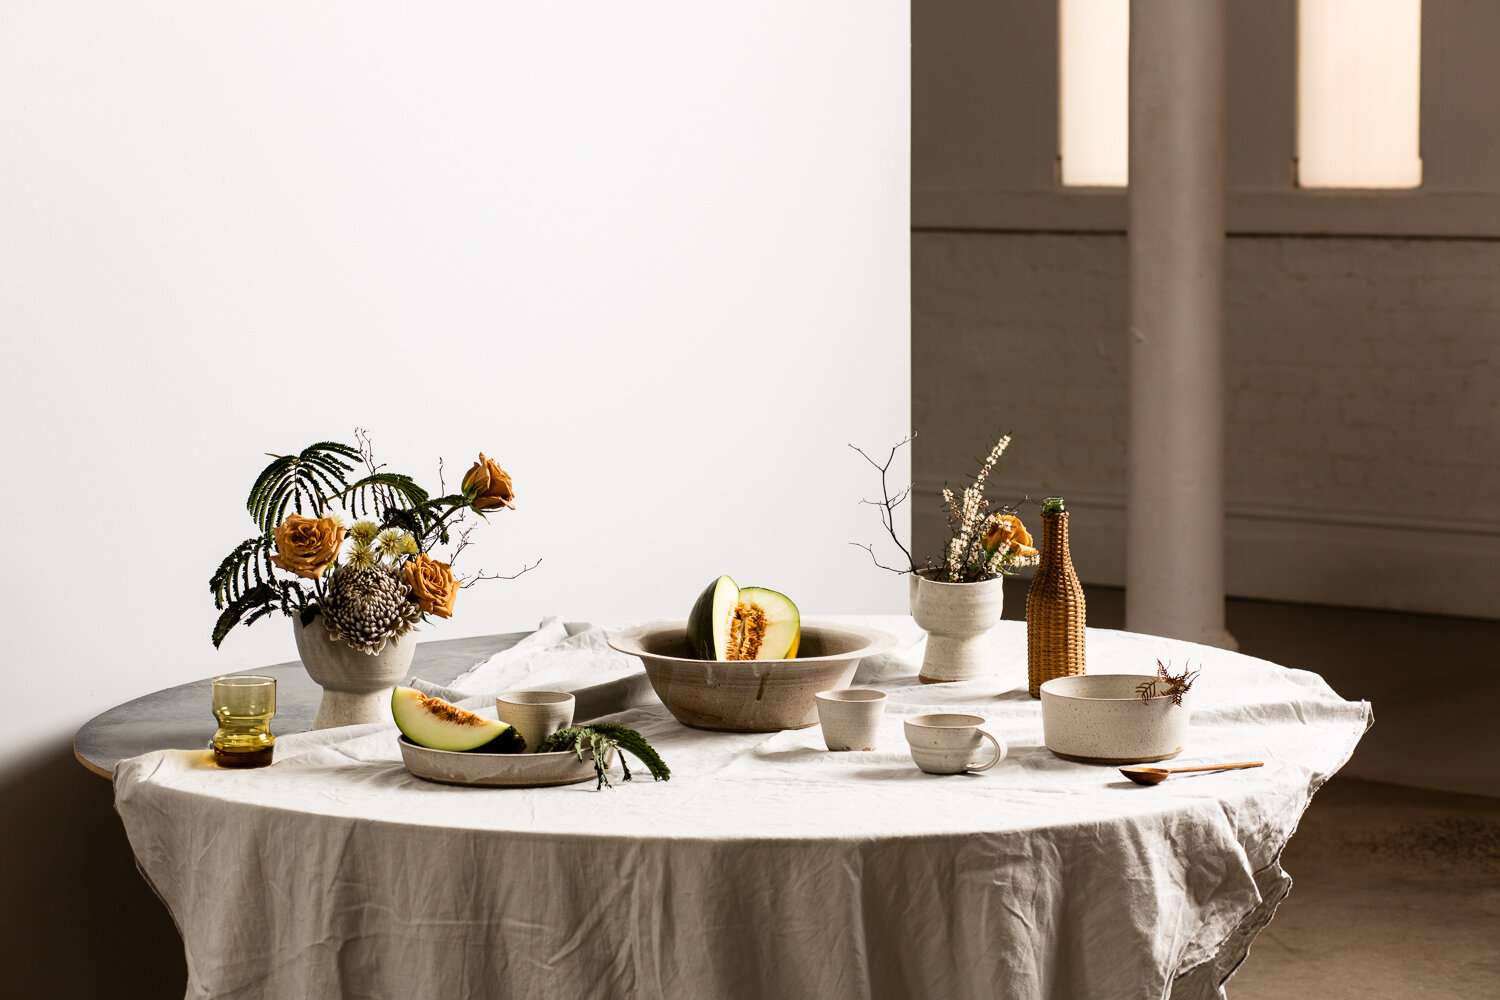 For The Love Of Home - Asobimasu tableware coming soon.